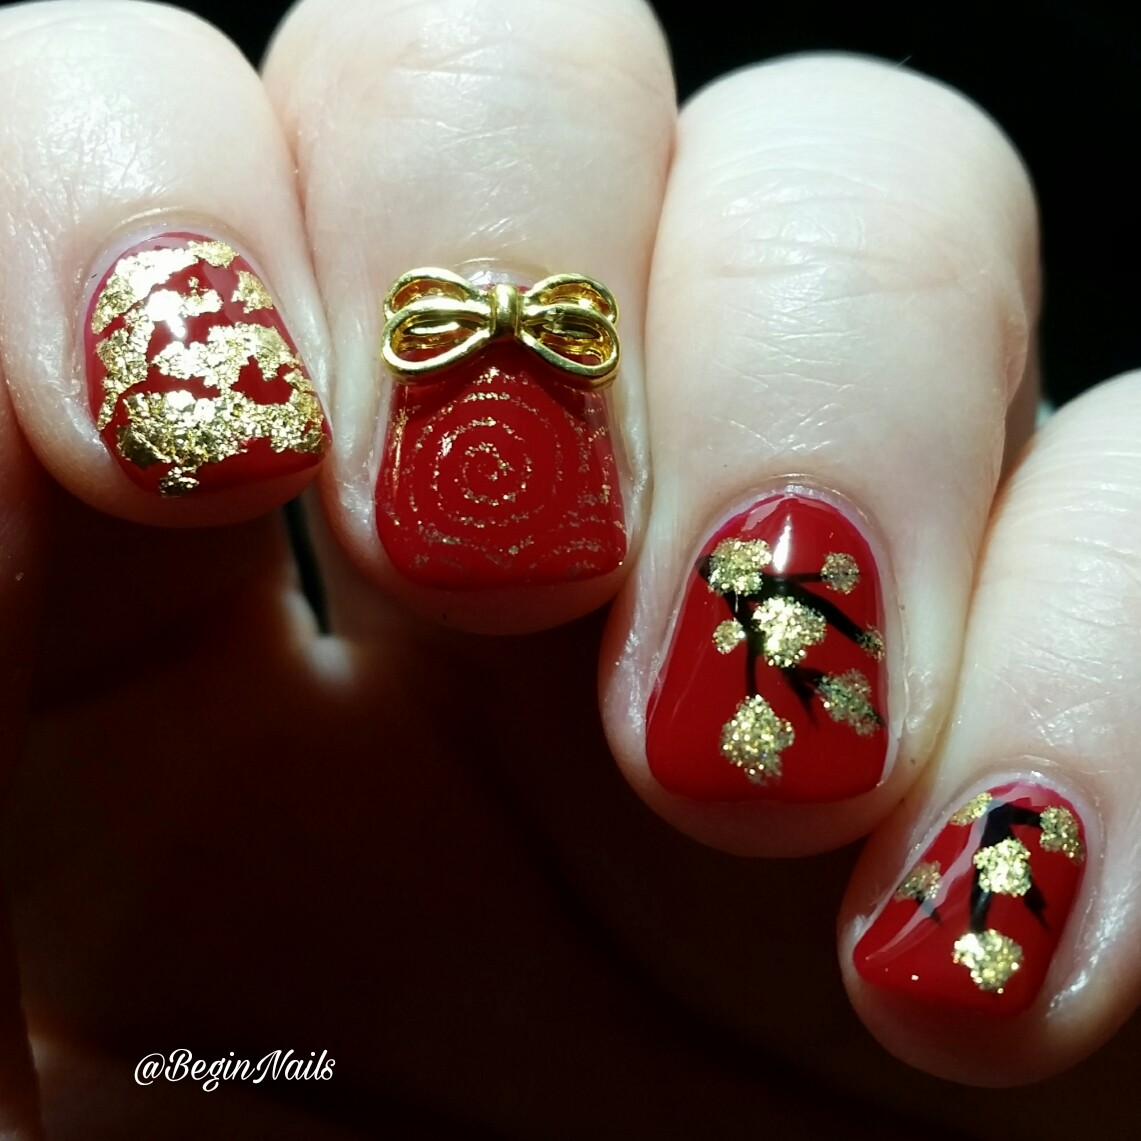 Simple Nail Art For Chinese New Year: Let's Begin Nails: A New Beginning